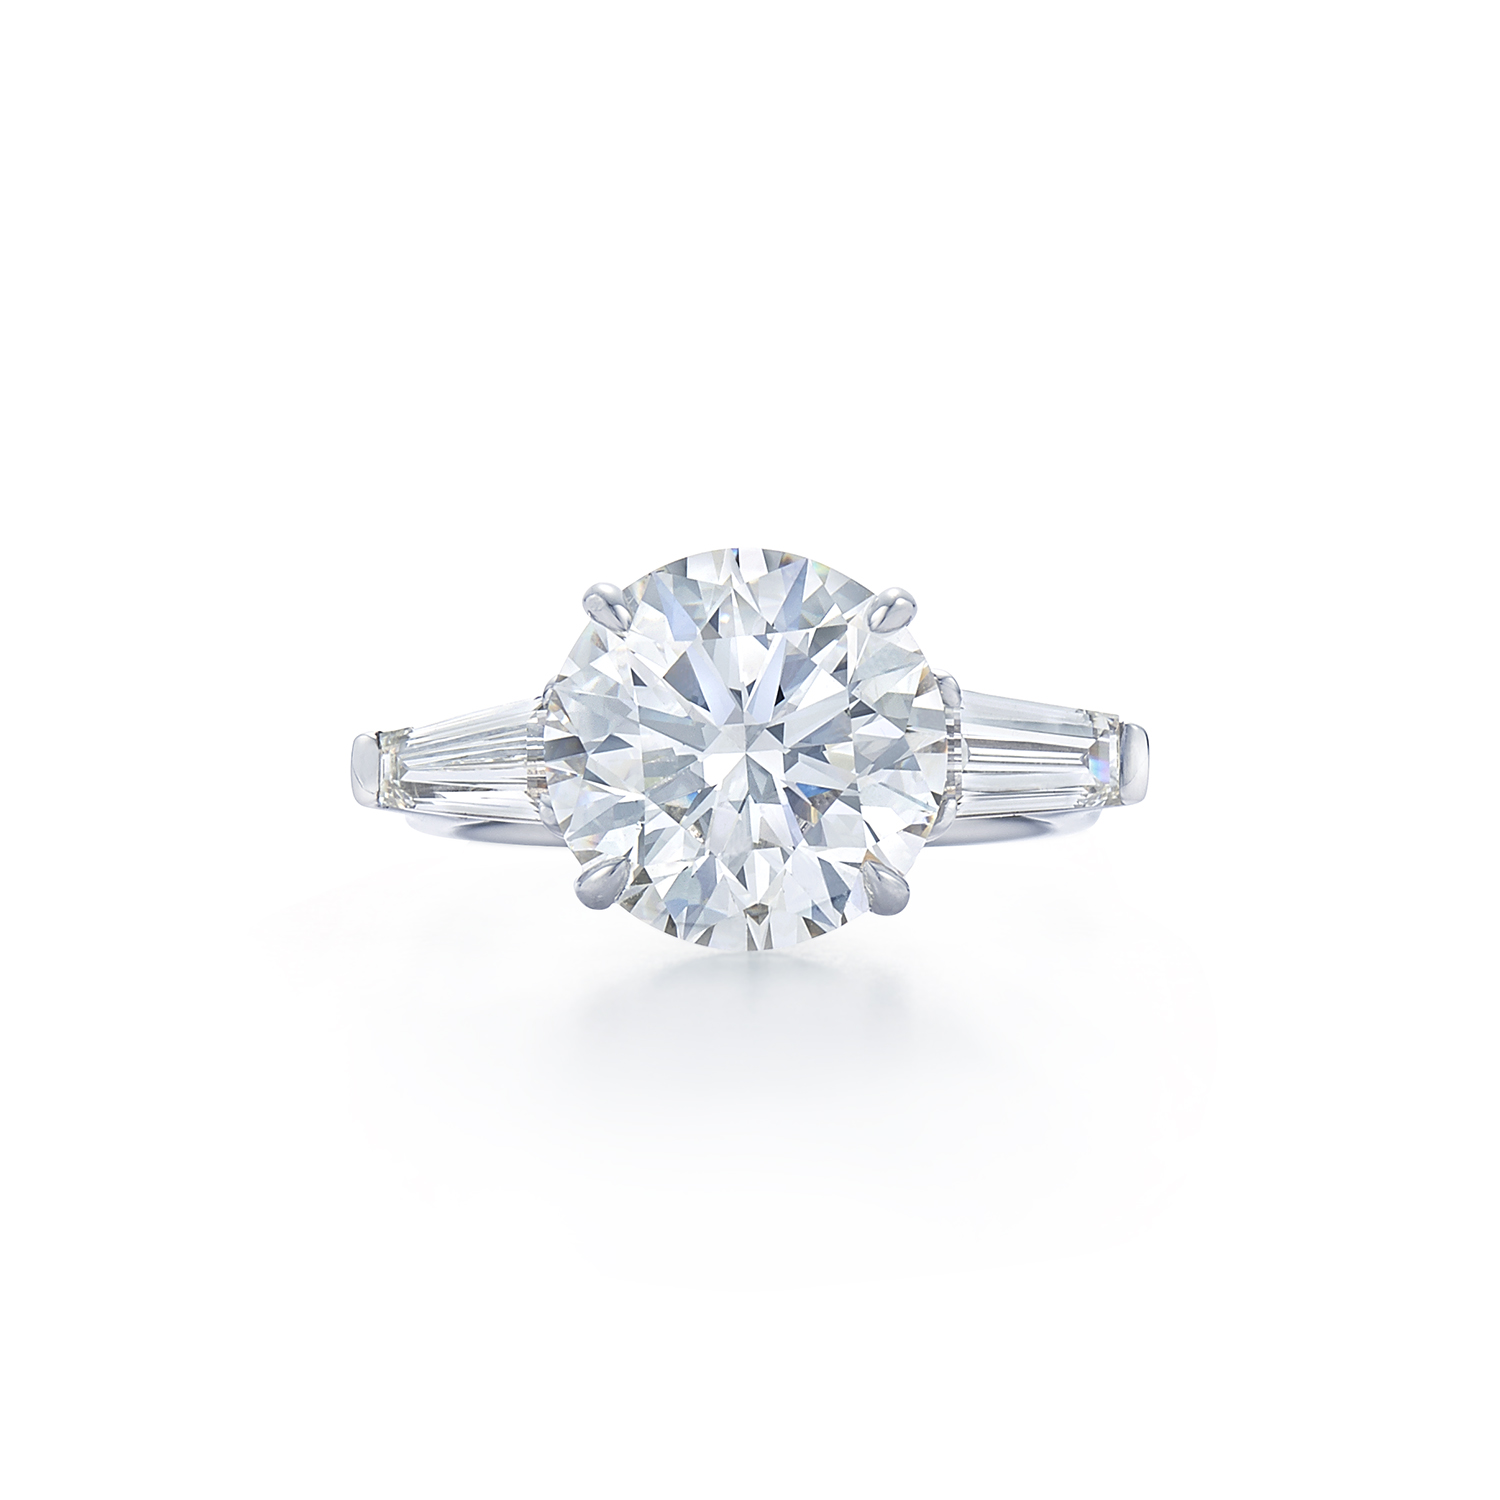 Round Brilliant Diamond Engagement Ring At Dk Gems